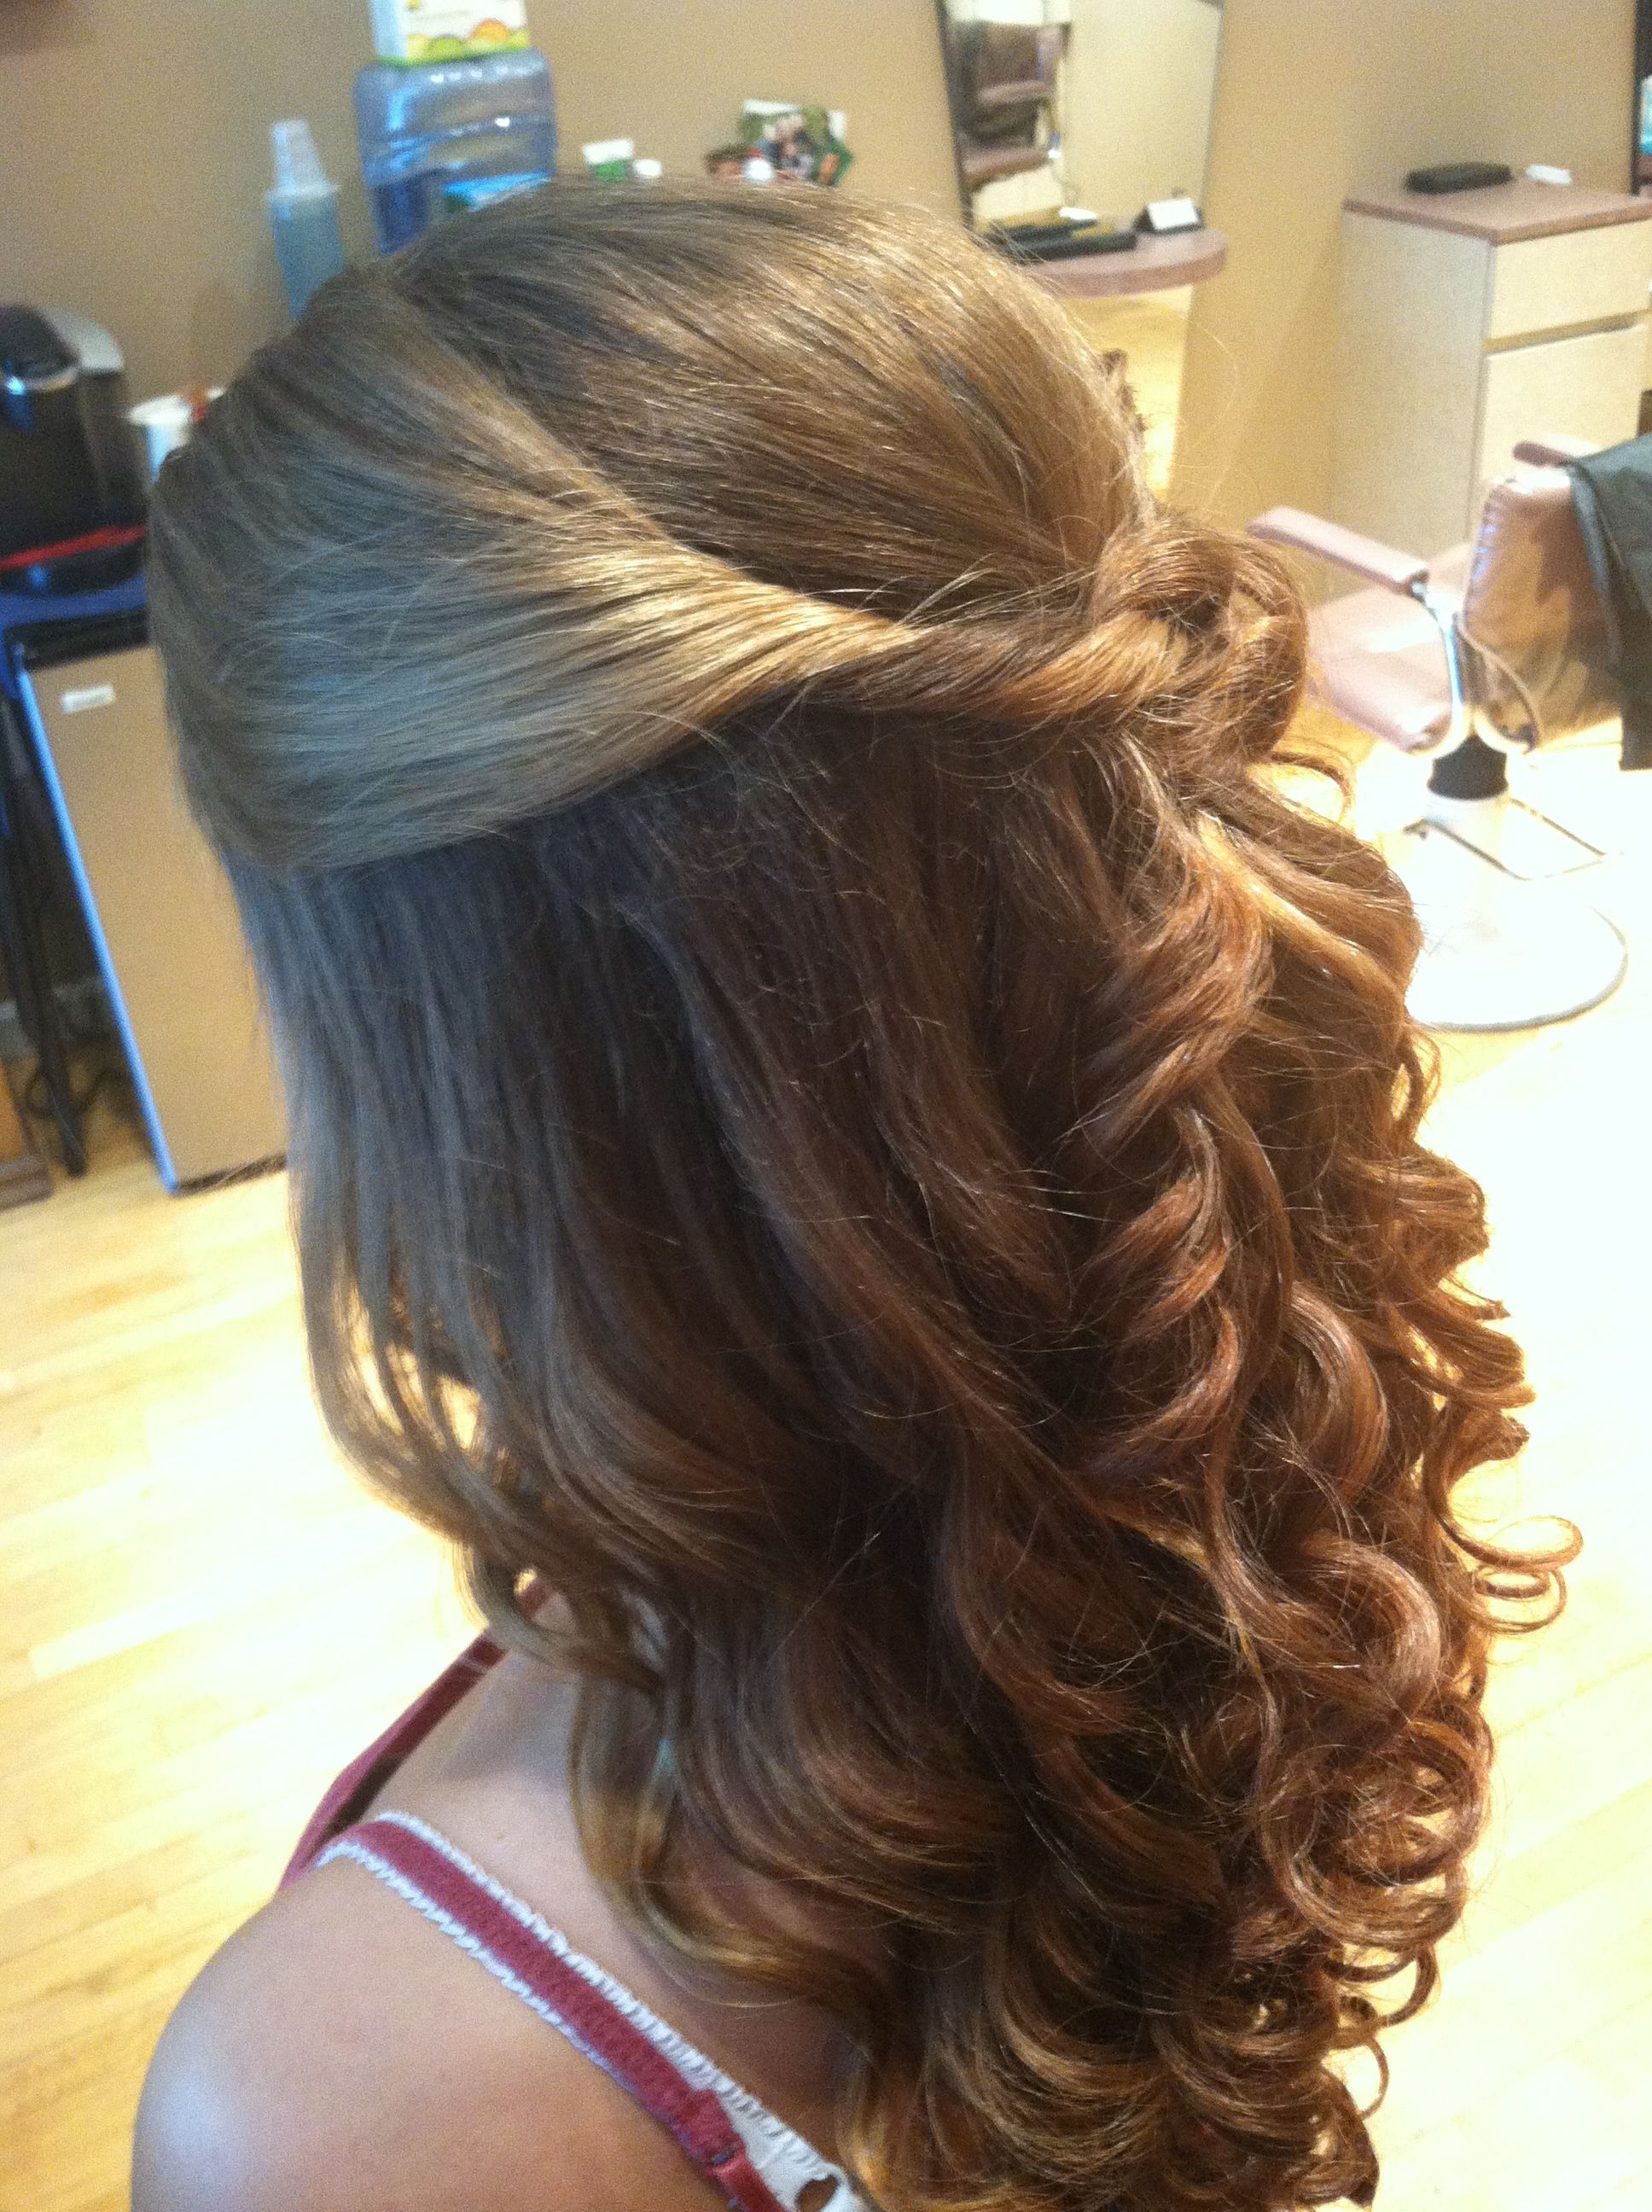 Curled With A Wand, Knotted Half Up With Cascading Spiral Curls Regarding 2018 Fabulous Cascade Of Loose Curls Bridal Hairstyles (View 2 of 20)